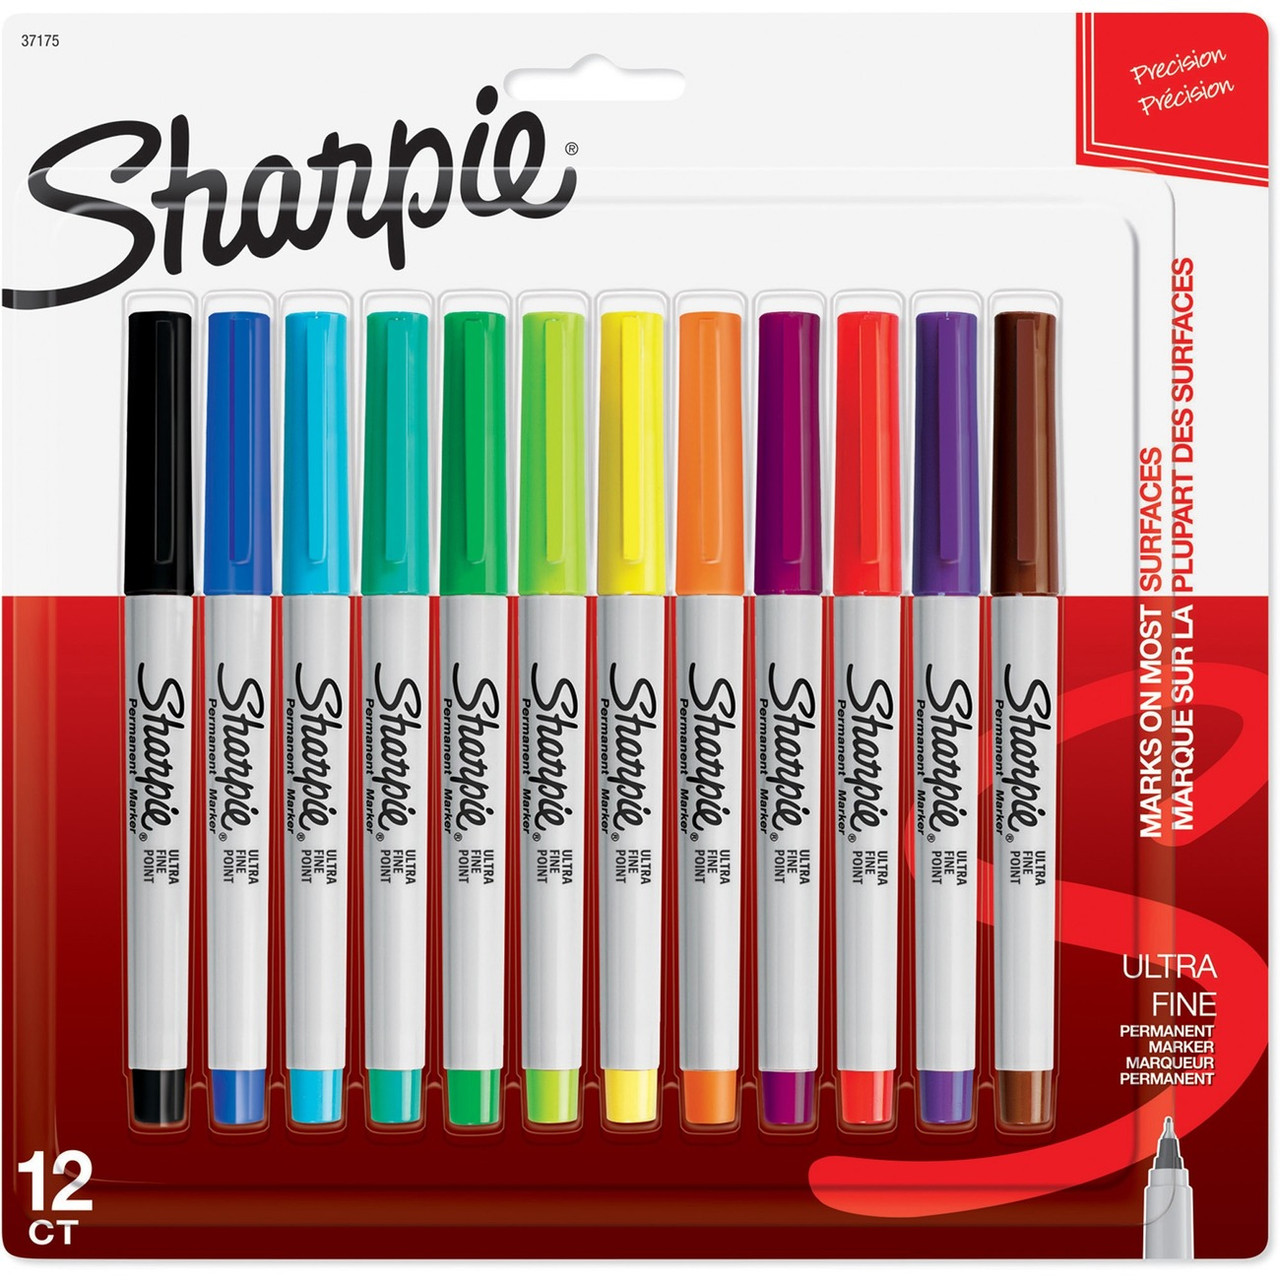 Sharpie Permanent Markers, Ultra Fine Point, Assorted Colors, 12 Count